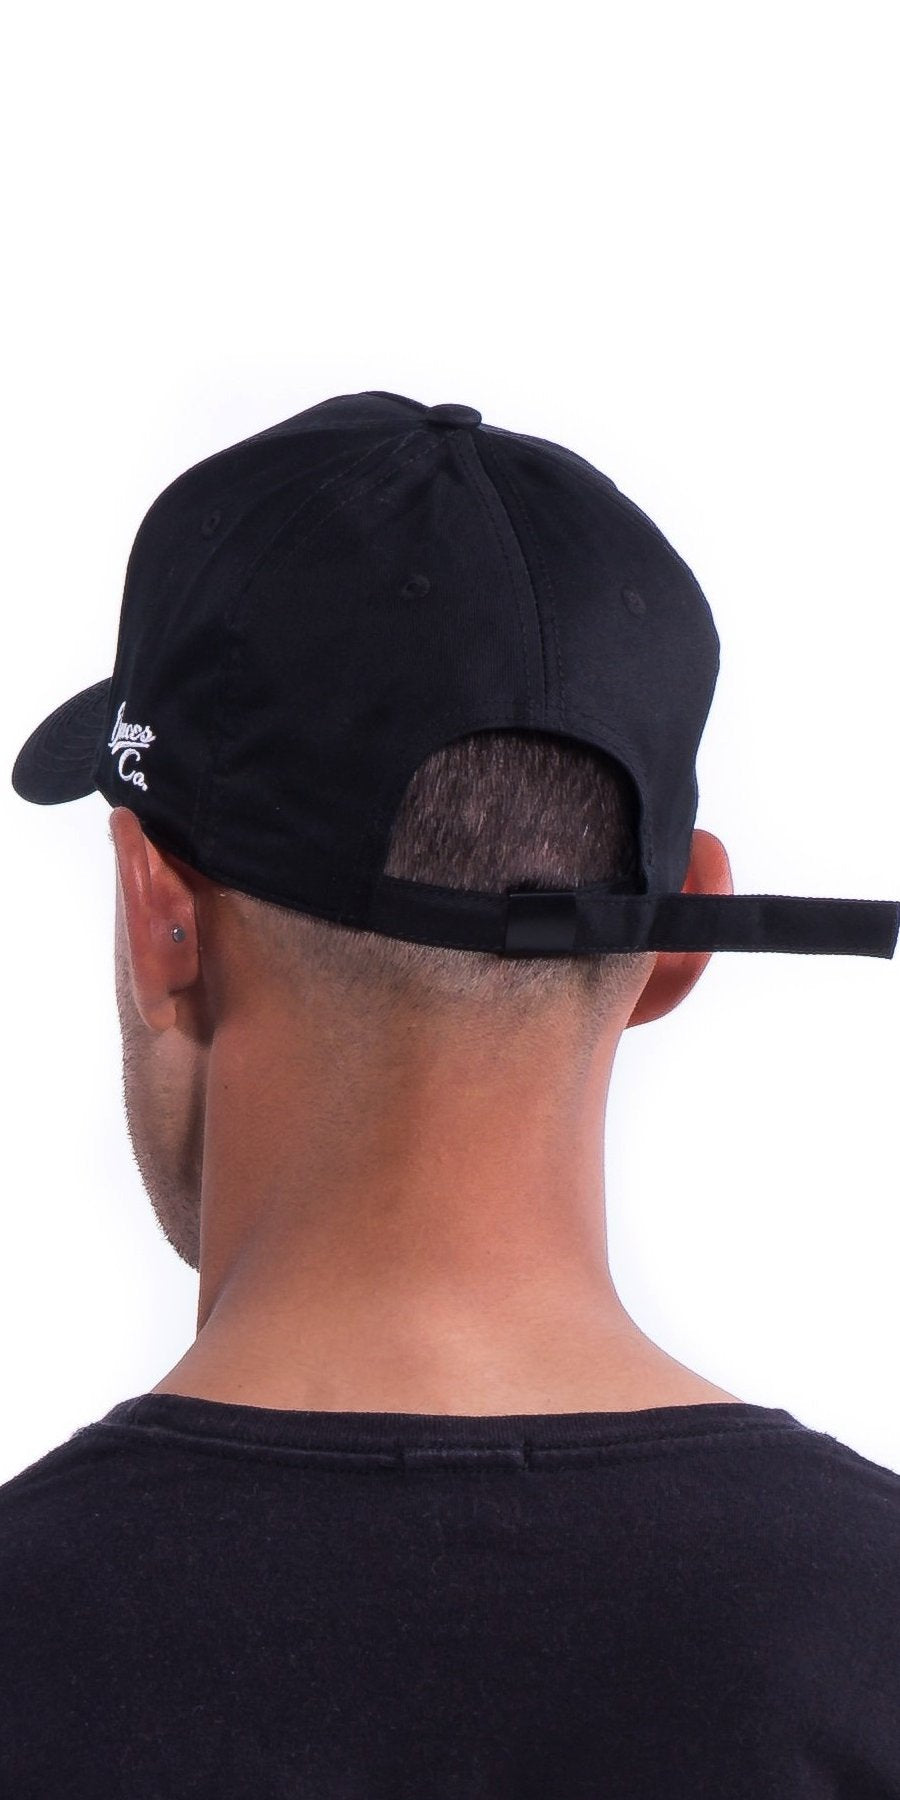 Black Deuces Co Strapback Cap Hat Rear